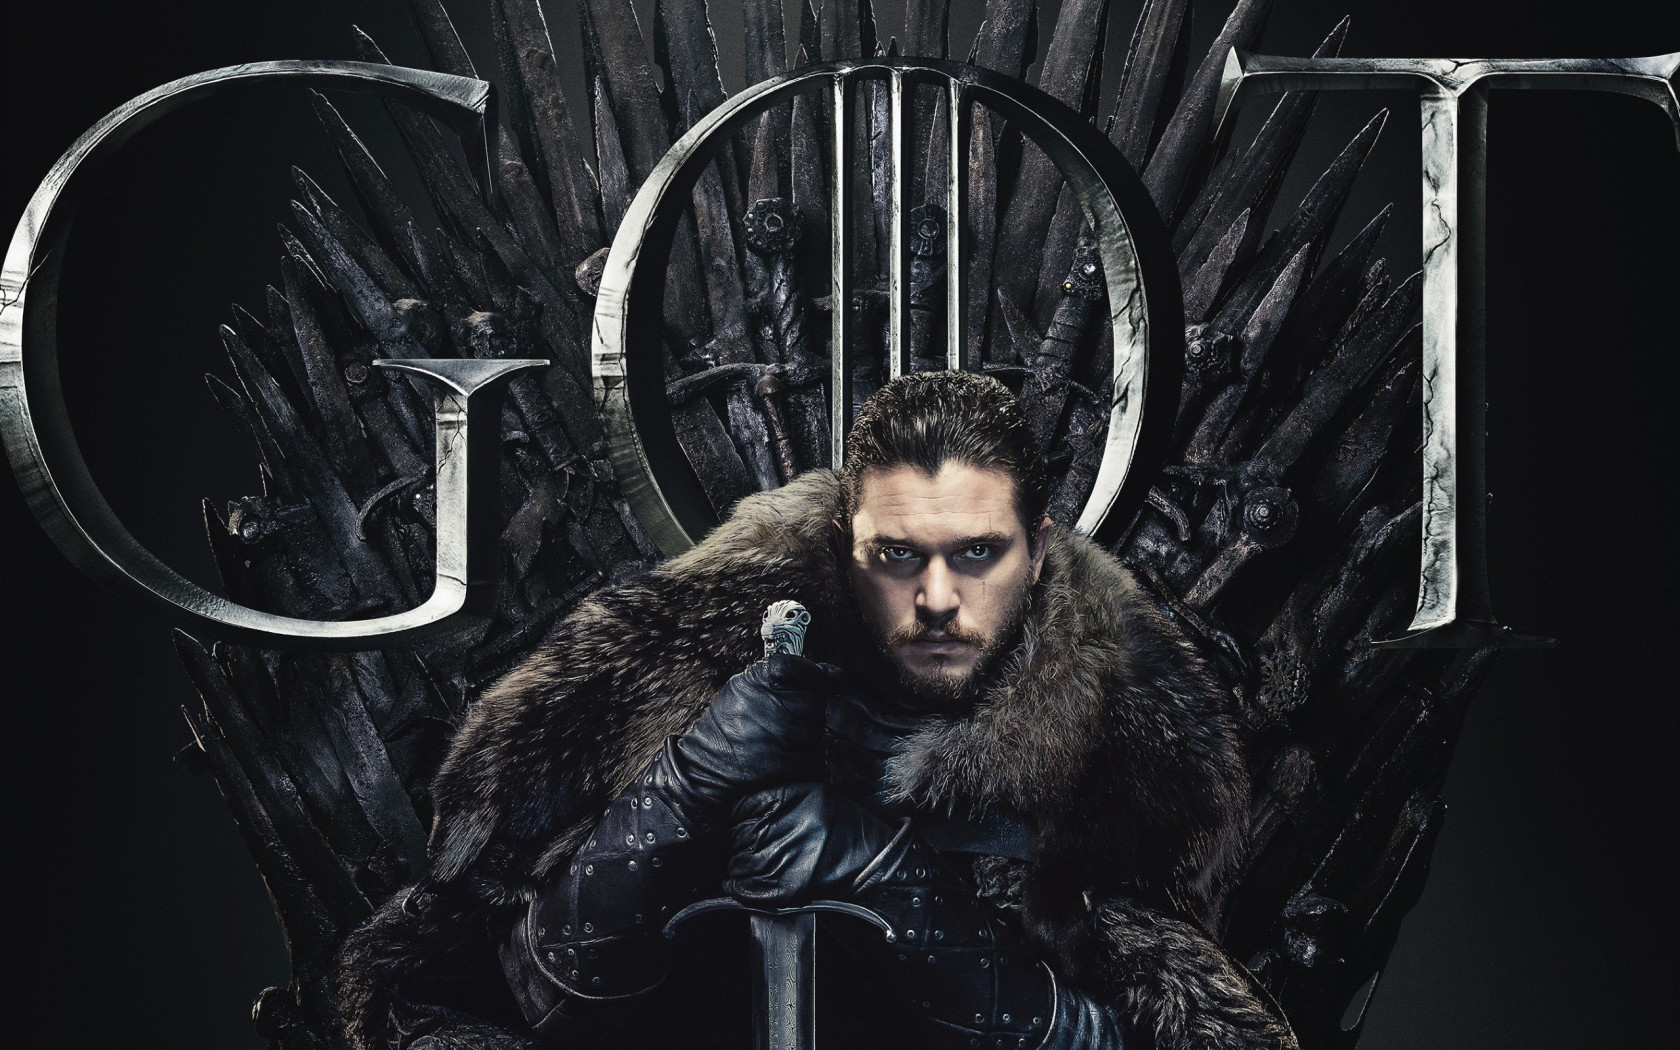 Game of Thrones 8 wallpaper 1680x1050